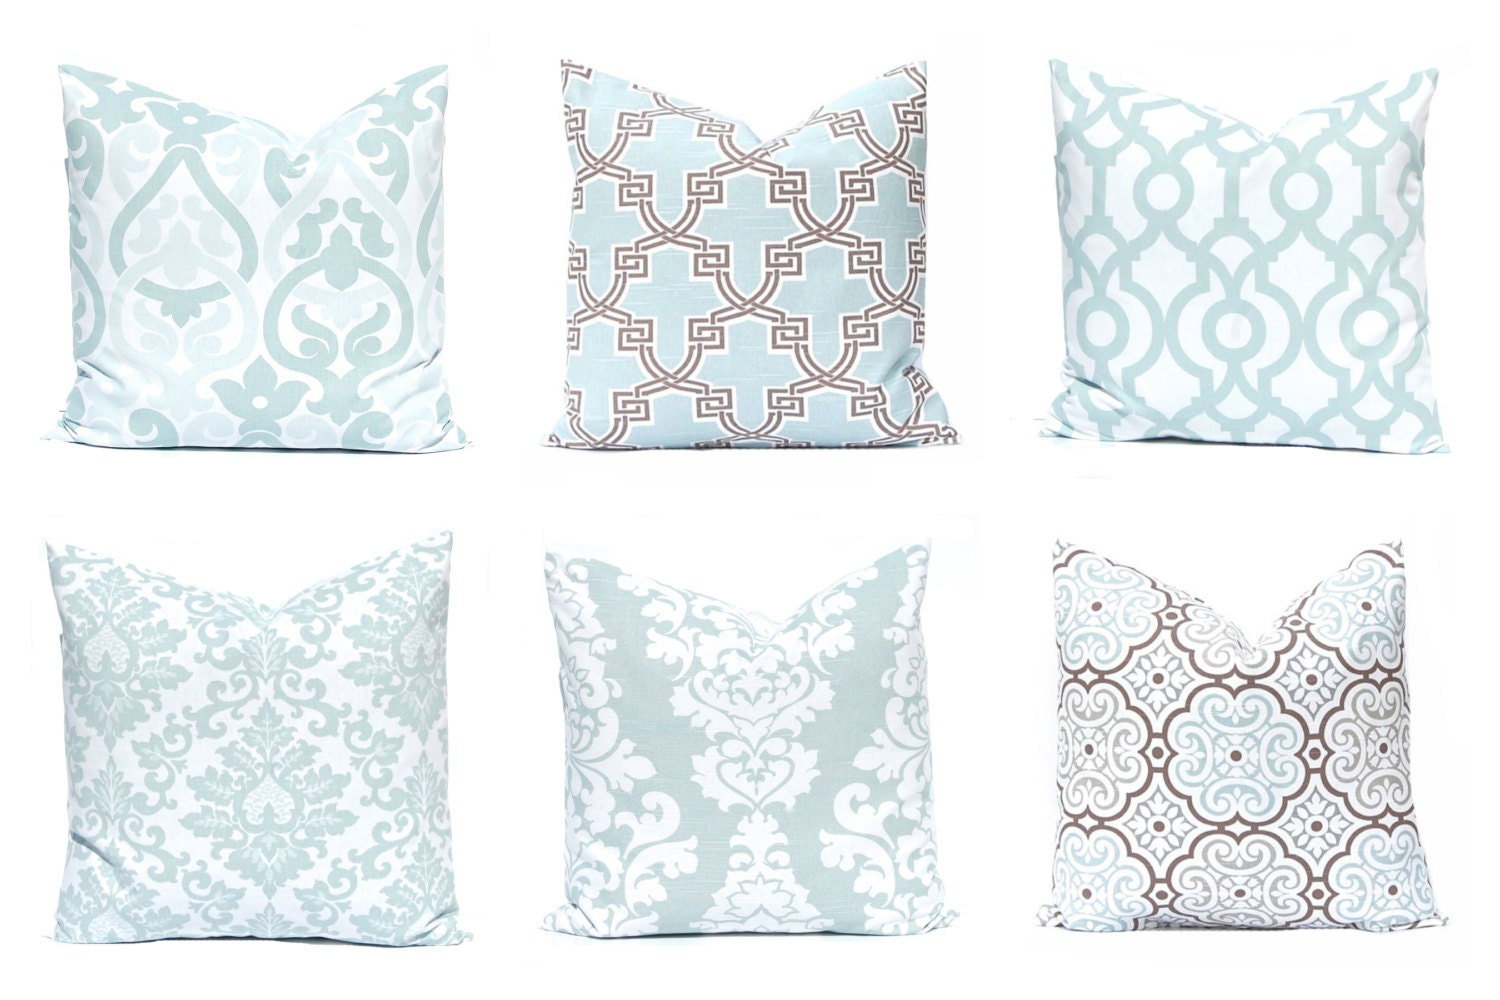 Decorative Throw Pillows Etsy : Decorative Pillow Covers Aqua Throw Pillow Covers Sofa